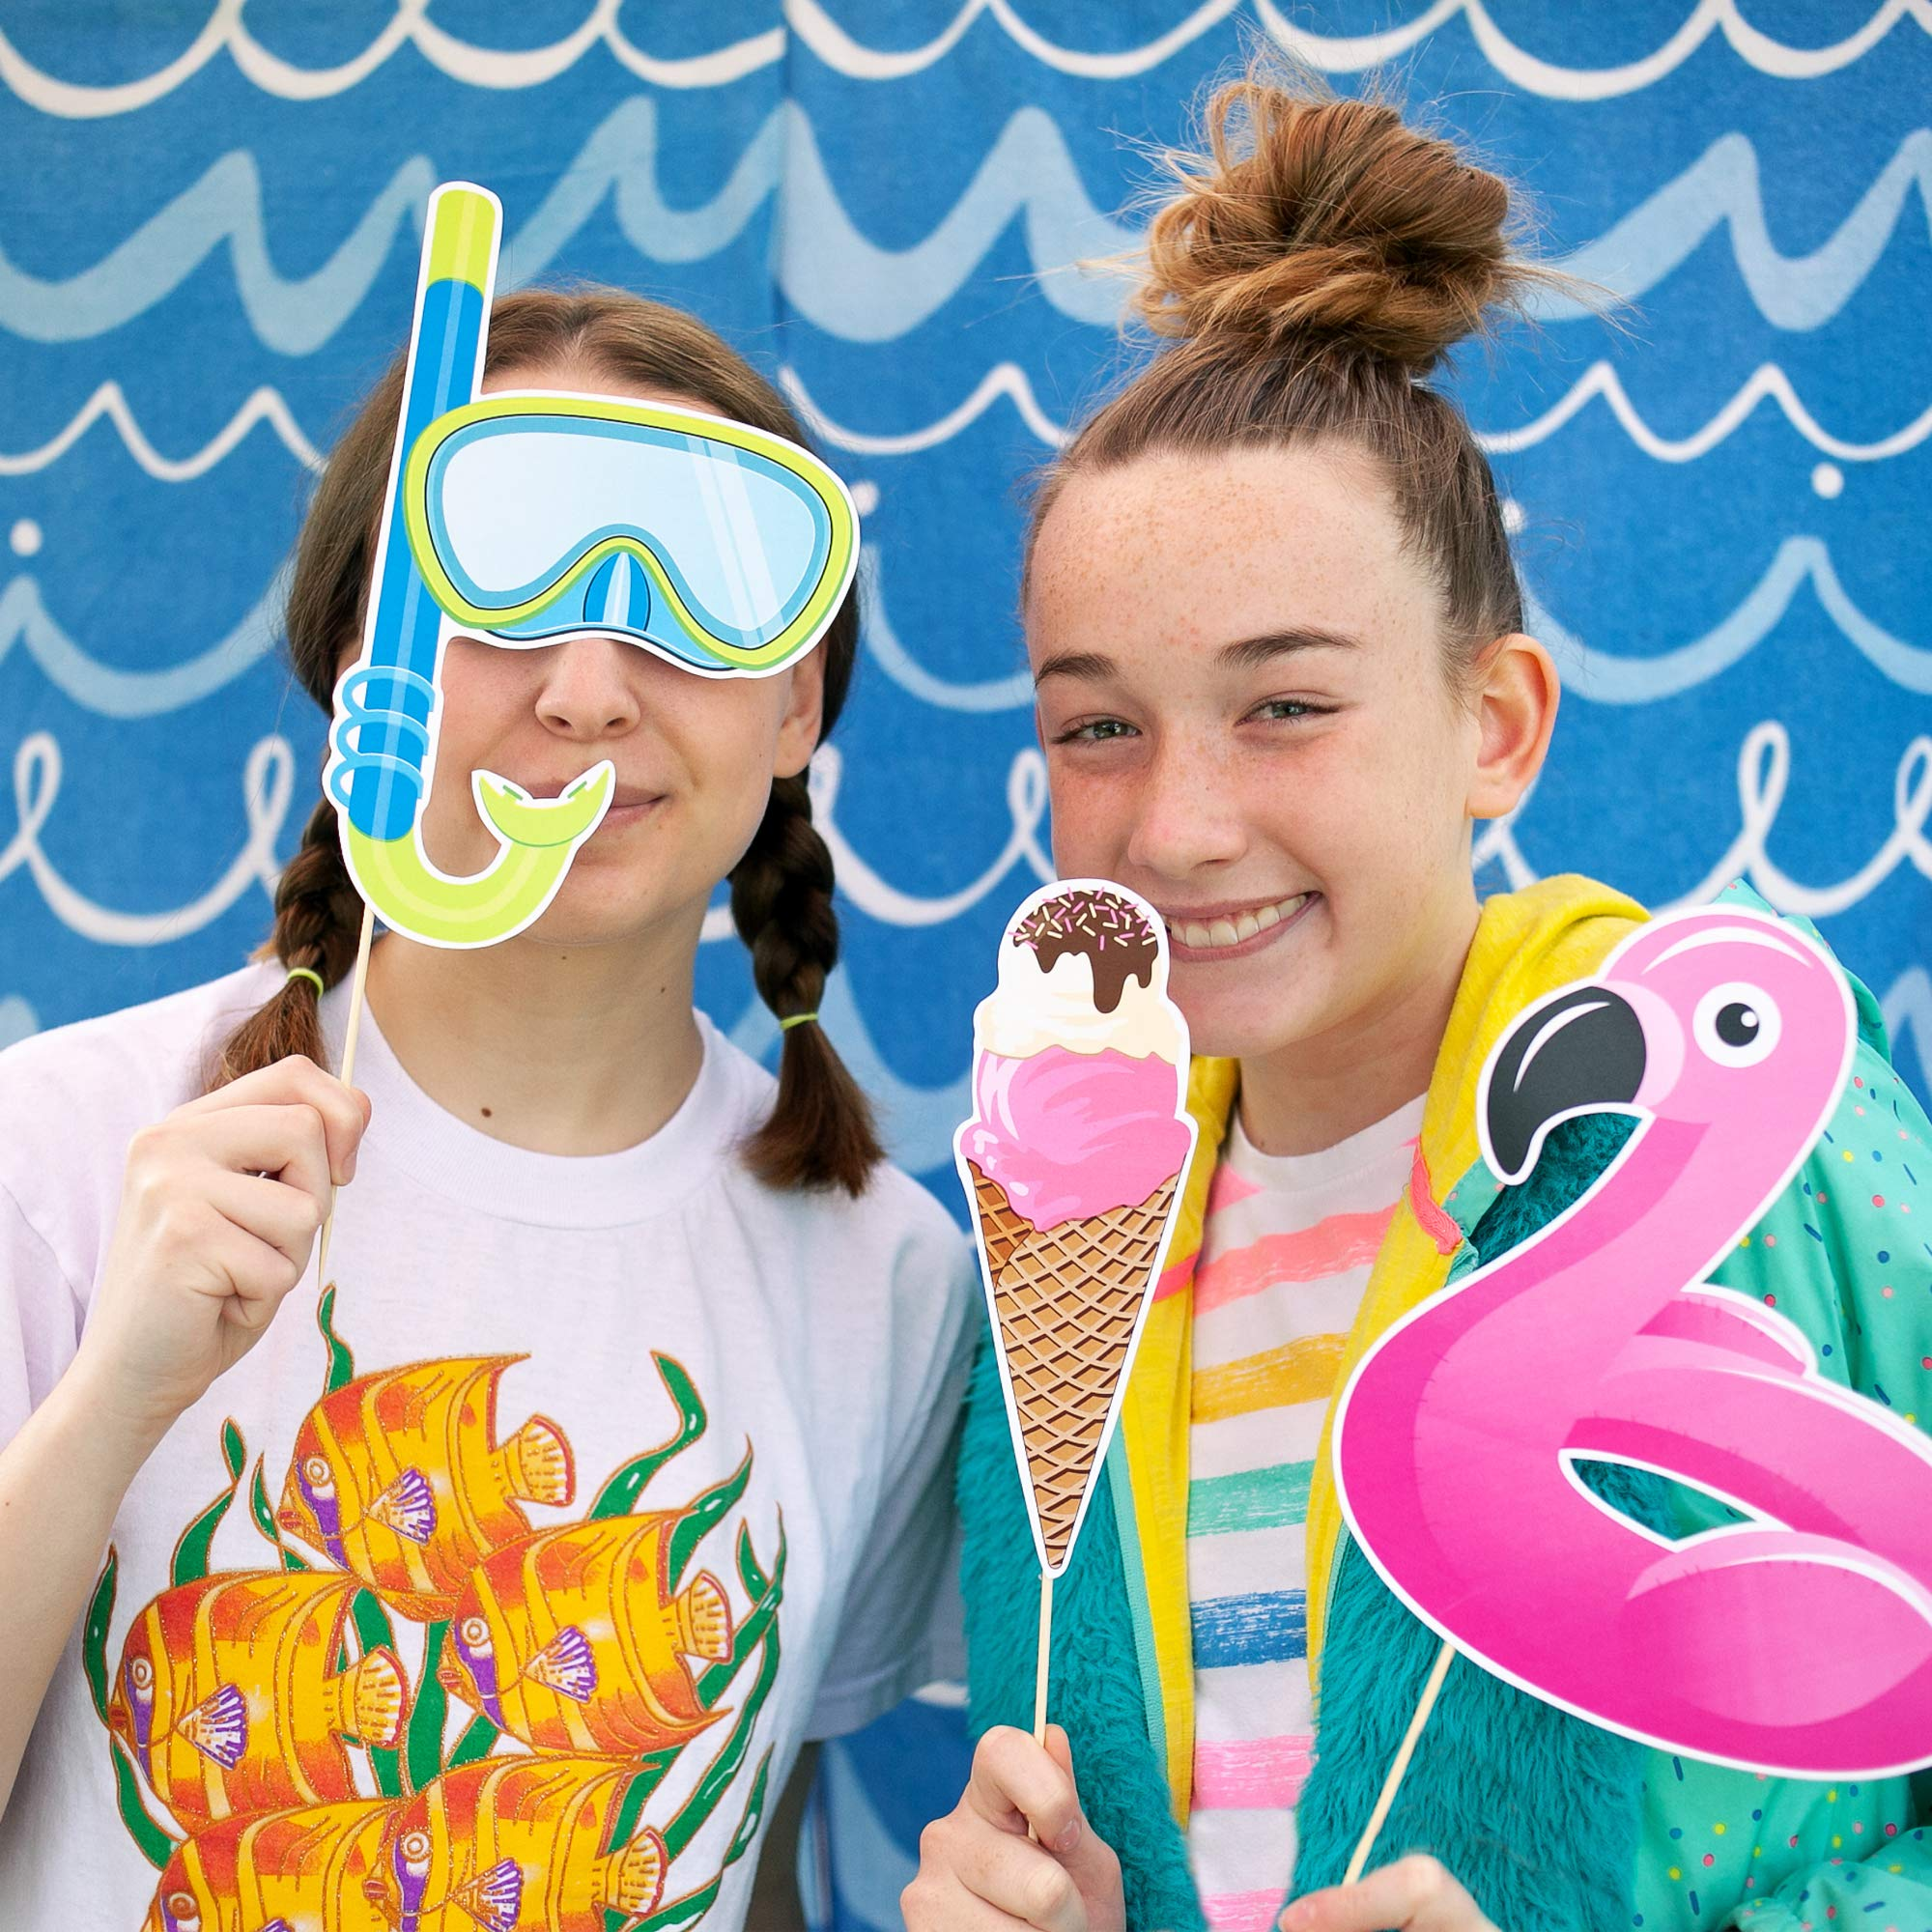 Beach Party Photo Booth Props by Paper and Cake - 18 piece set by Paper & Cake (Image #2)